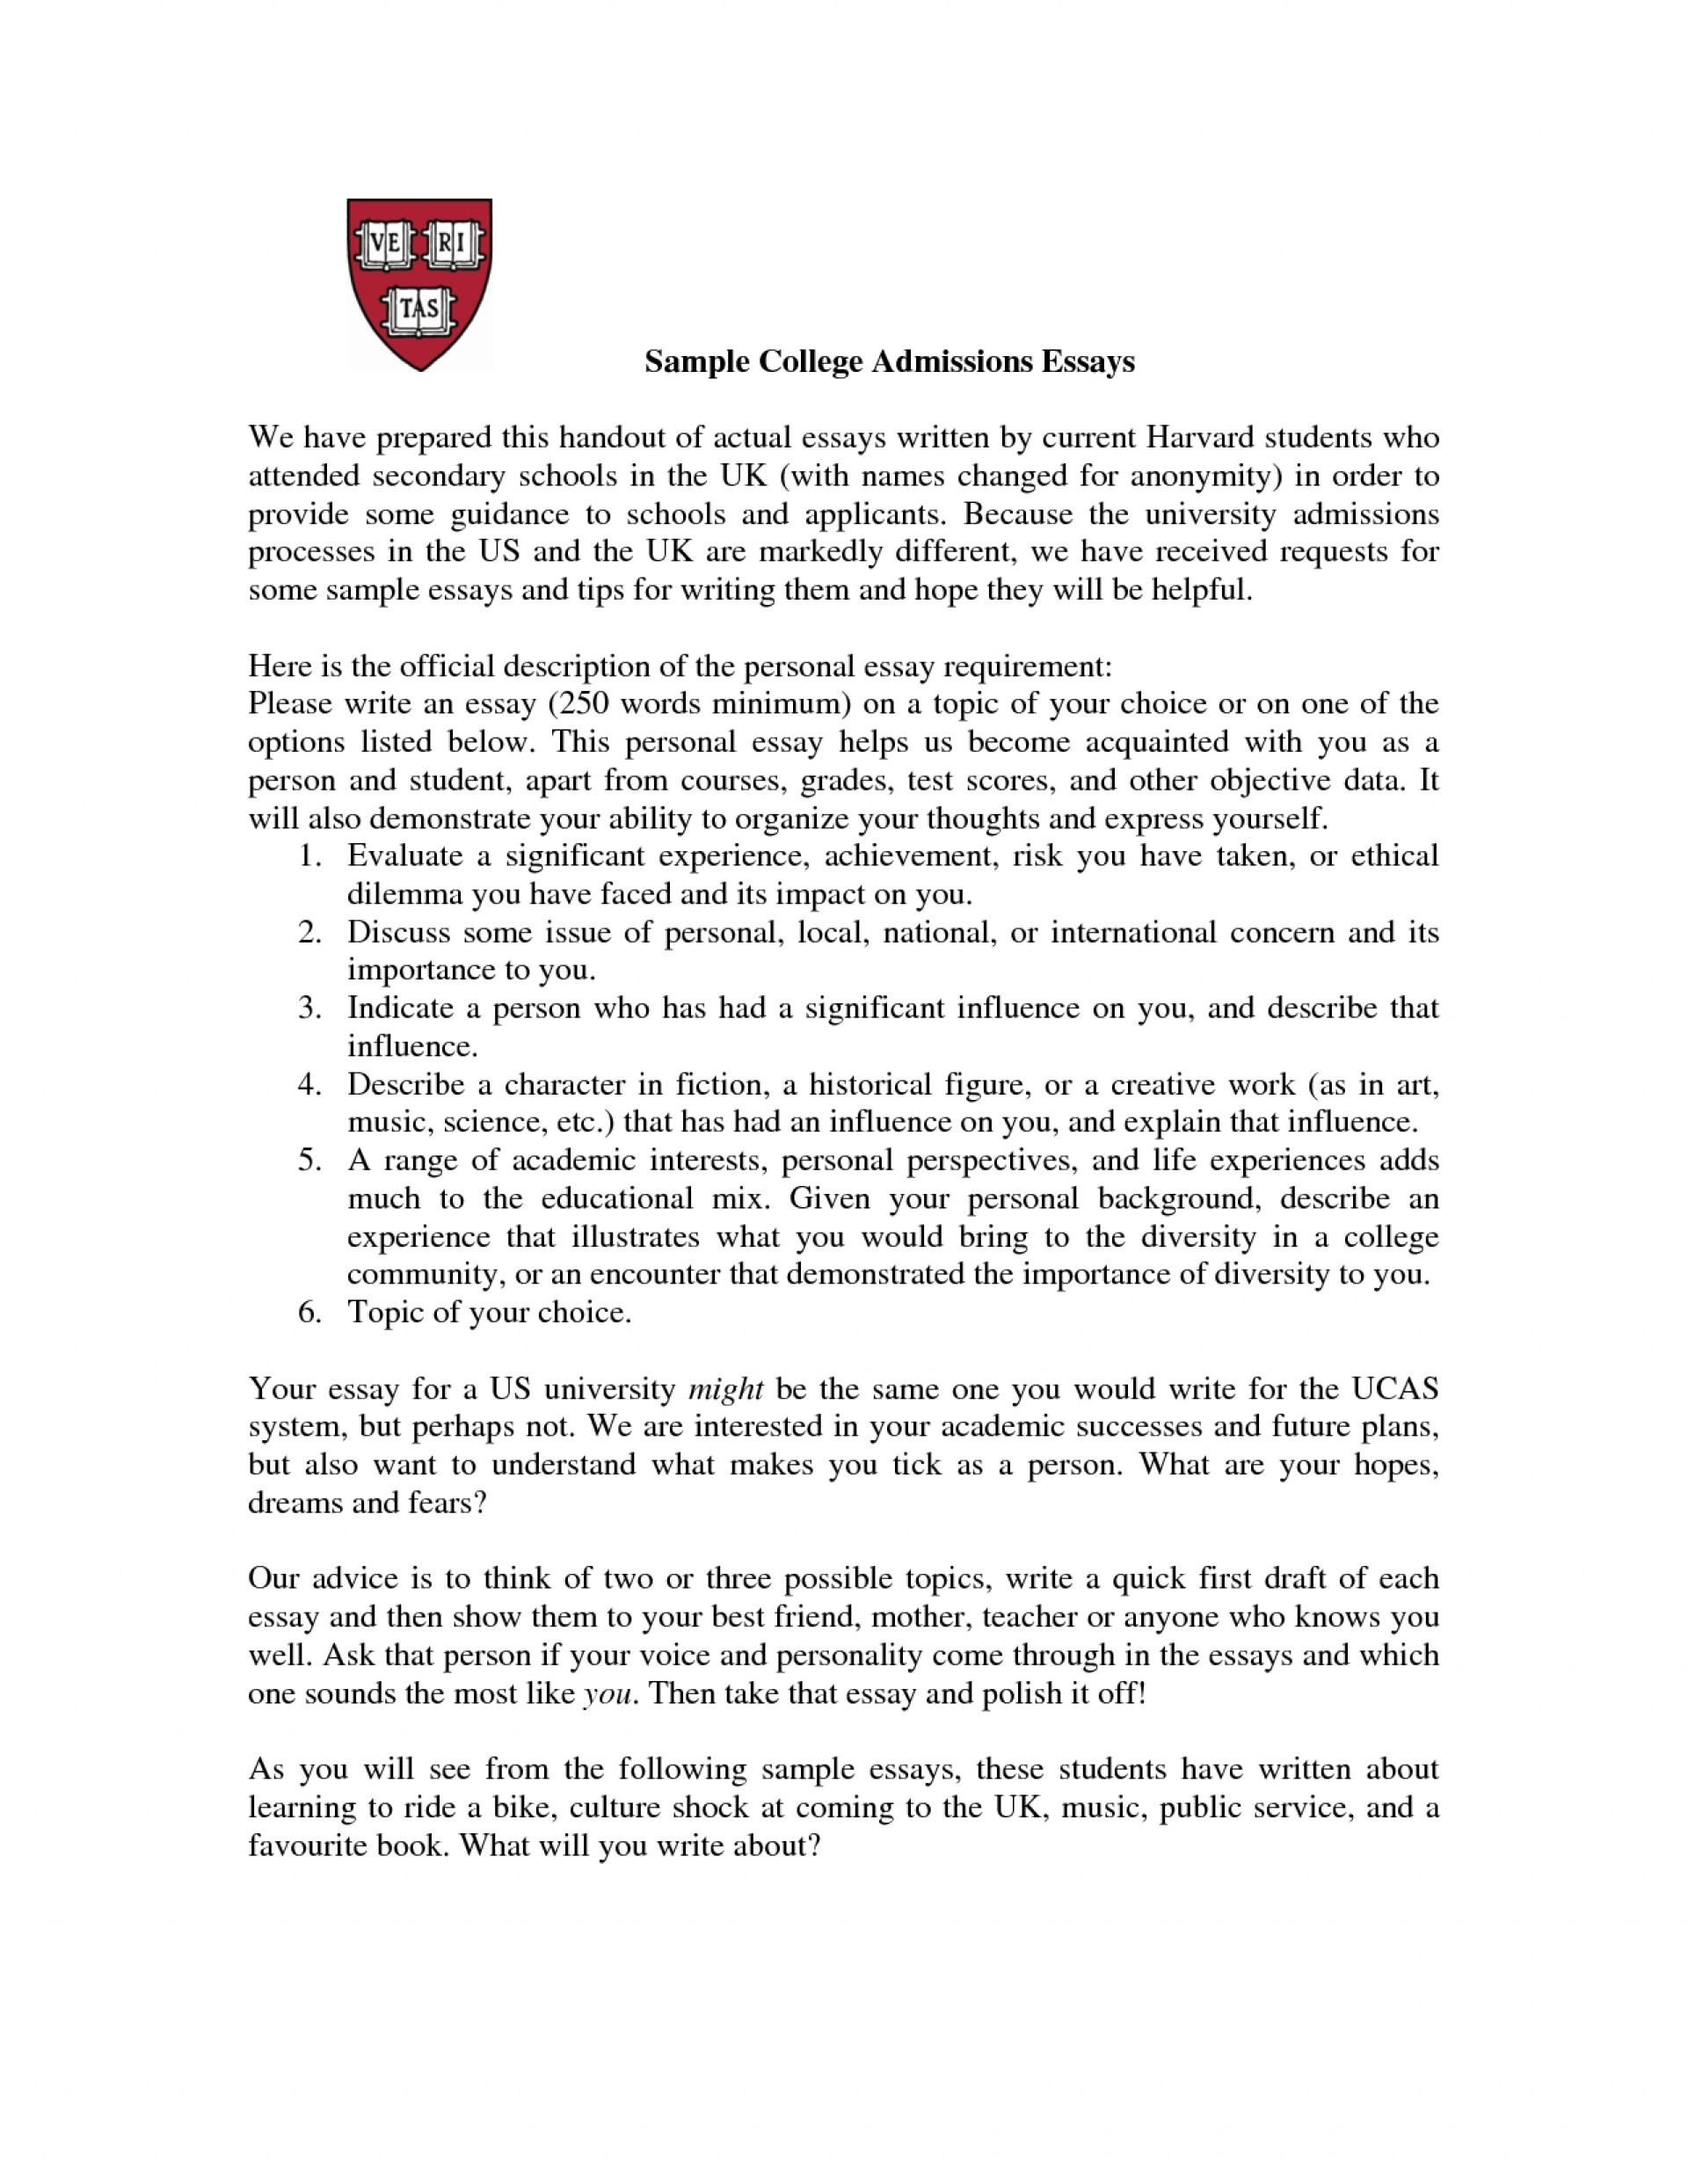 008 Essay Example Admission Impressive Examples High School About Yourself For Graduate College Free 1920